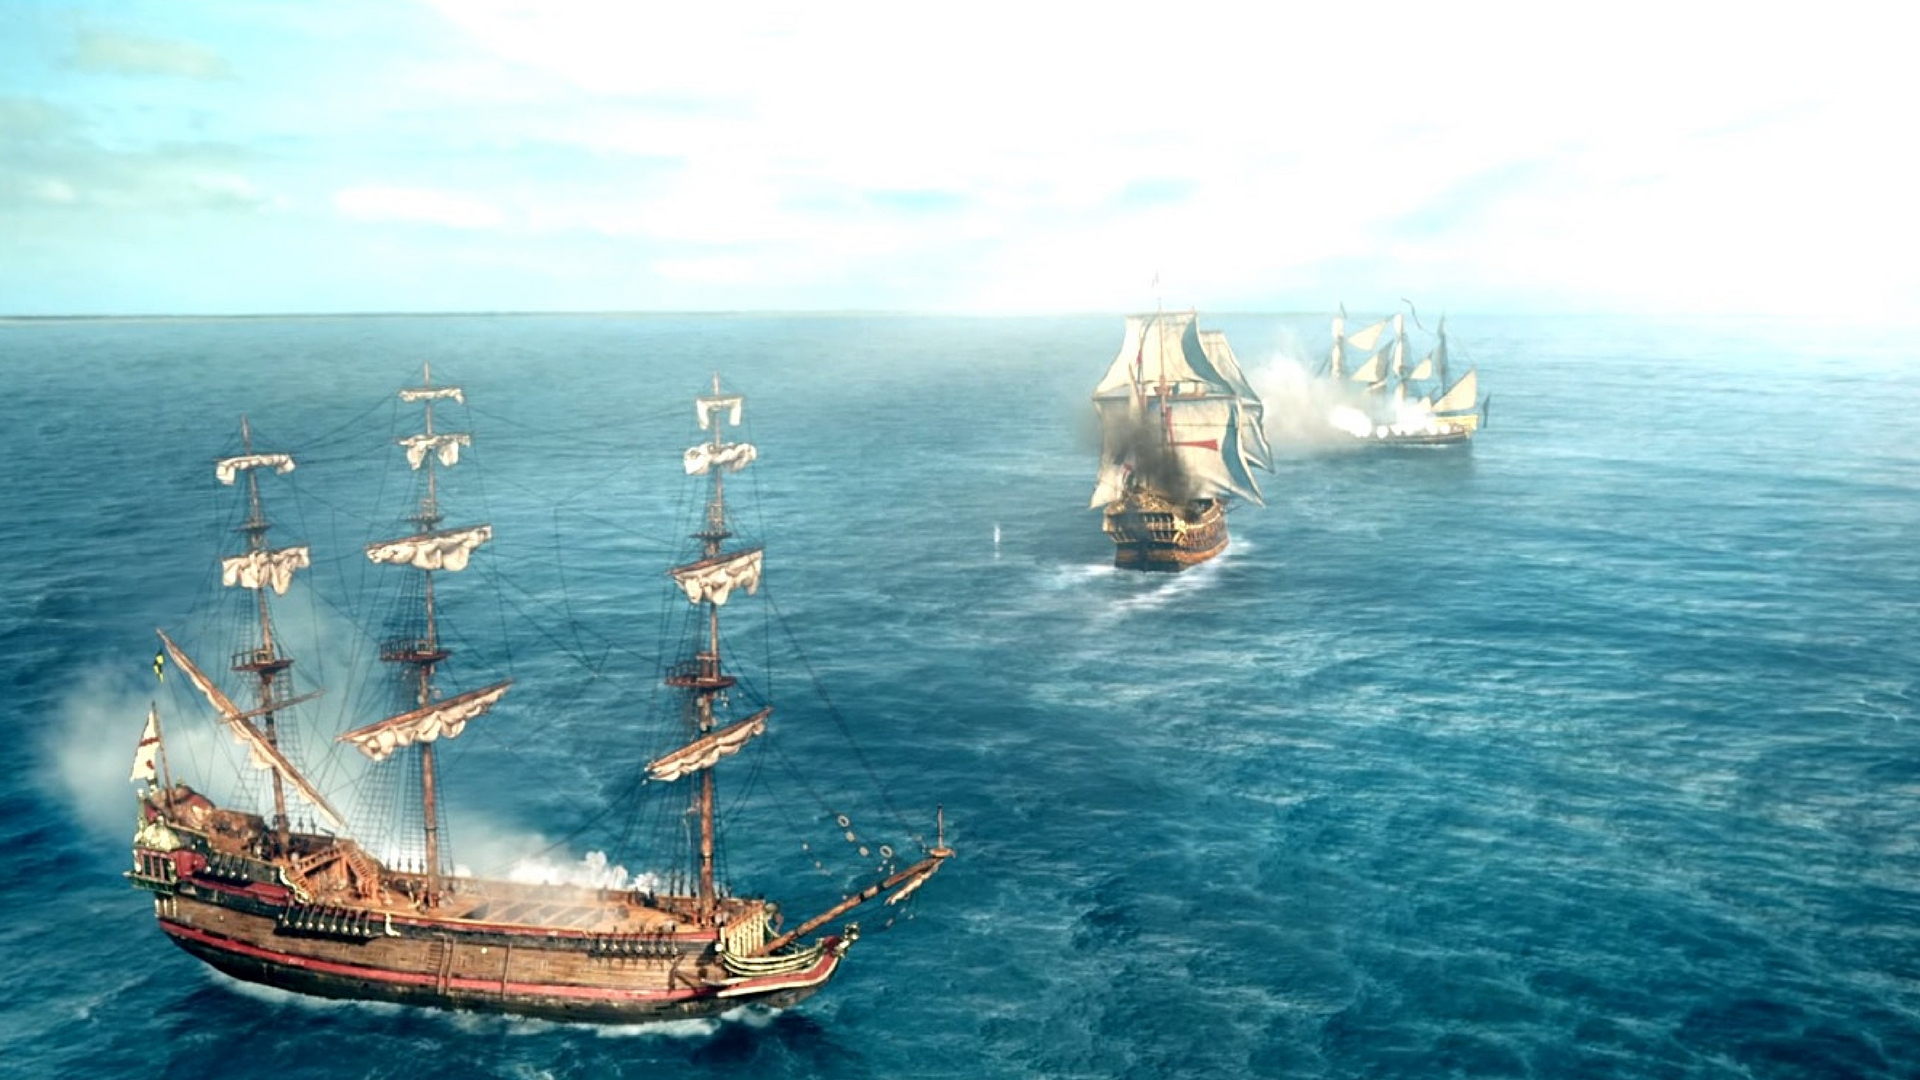 ships in black sails season 4 produced by micheal bay